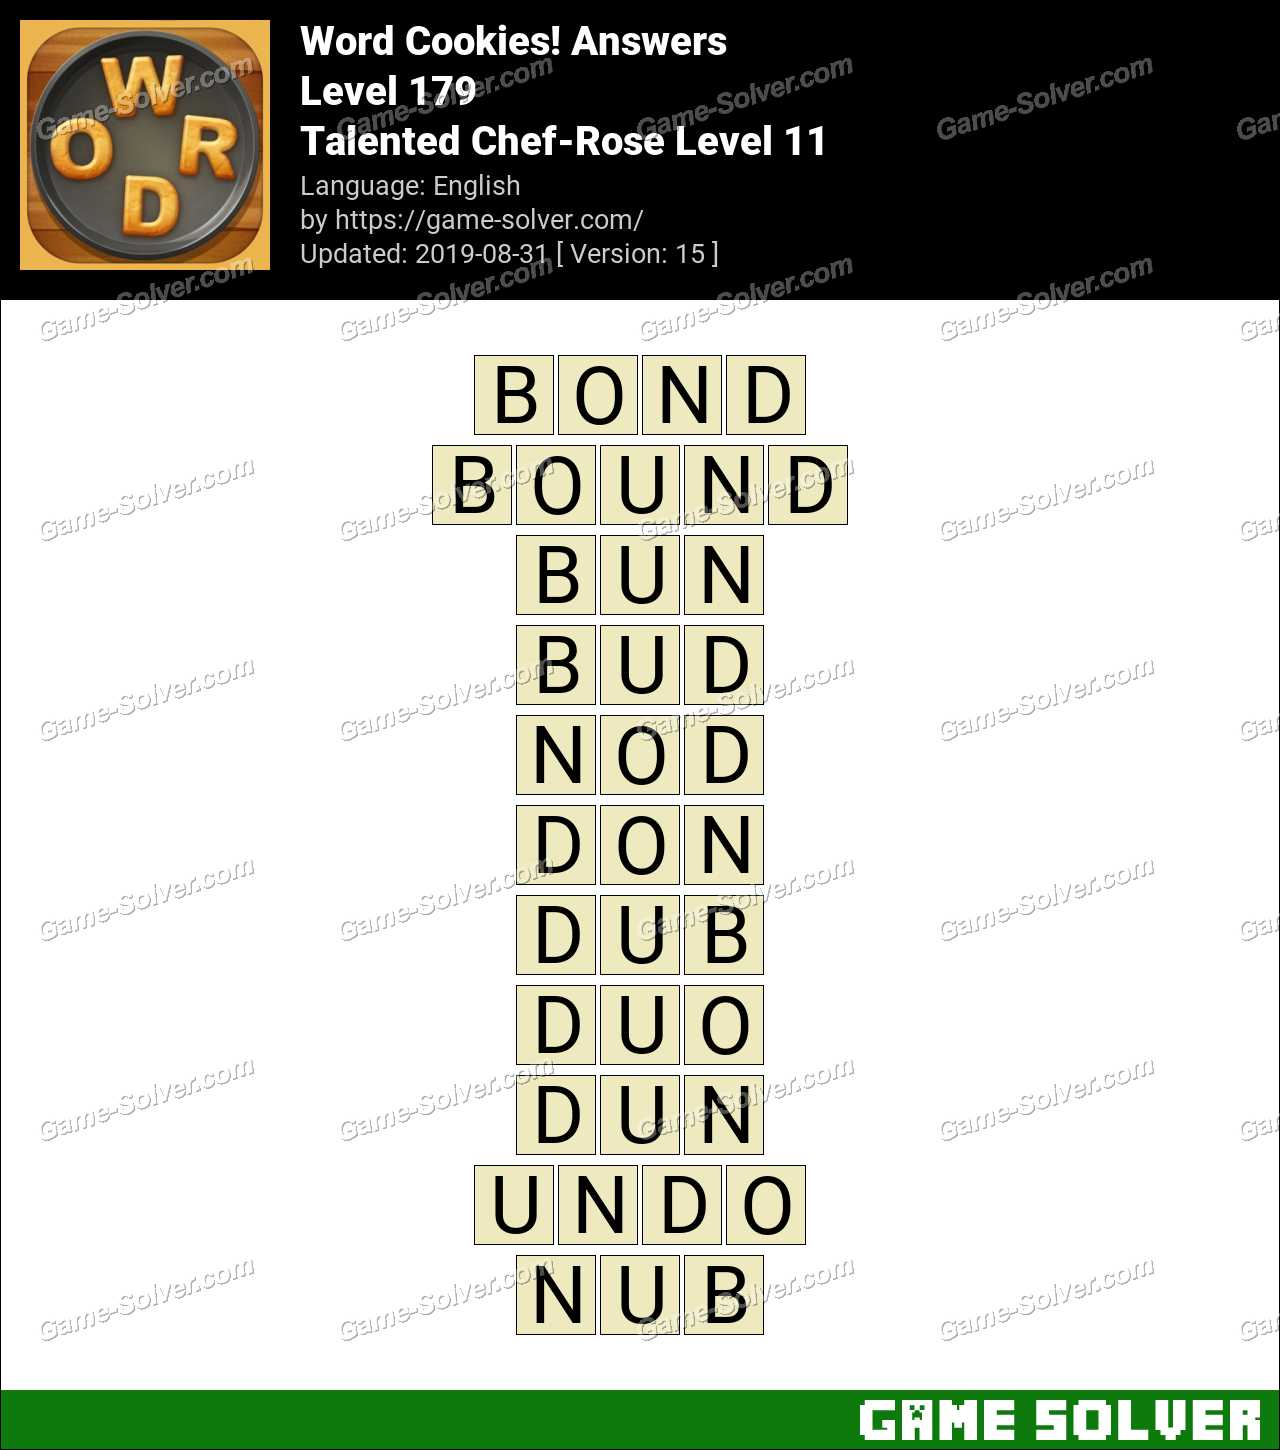 Word Cookies Talented Chef-Rose Level 11 Answers